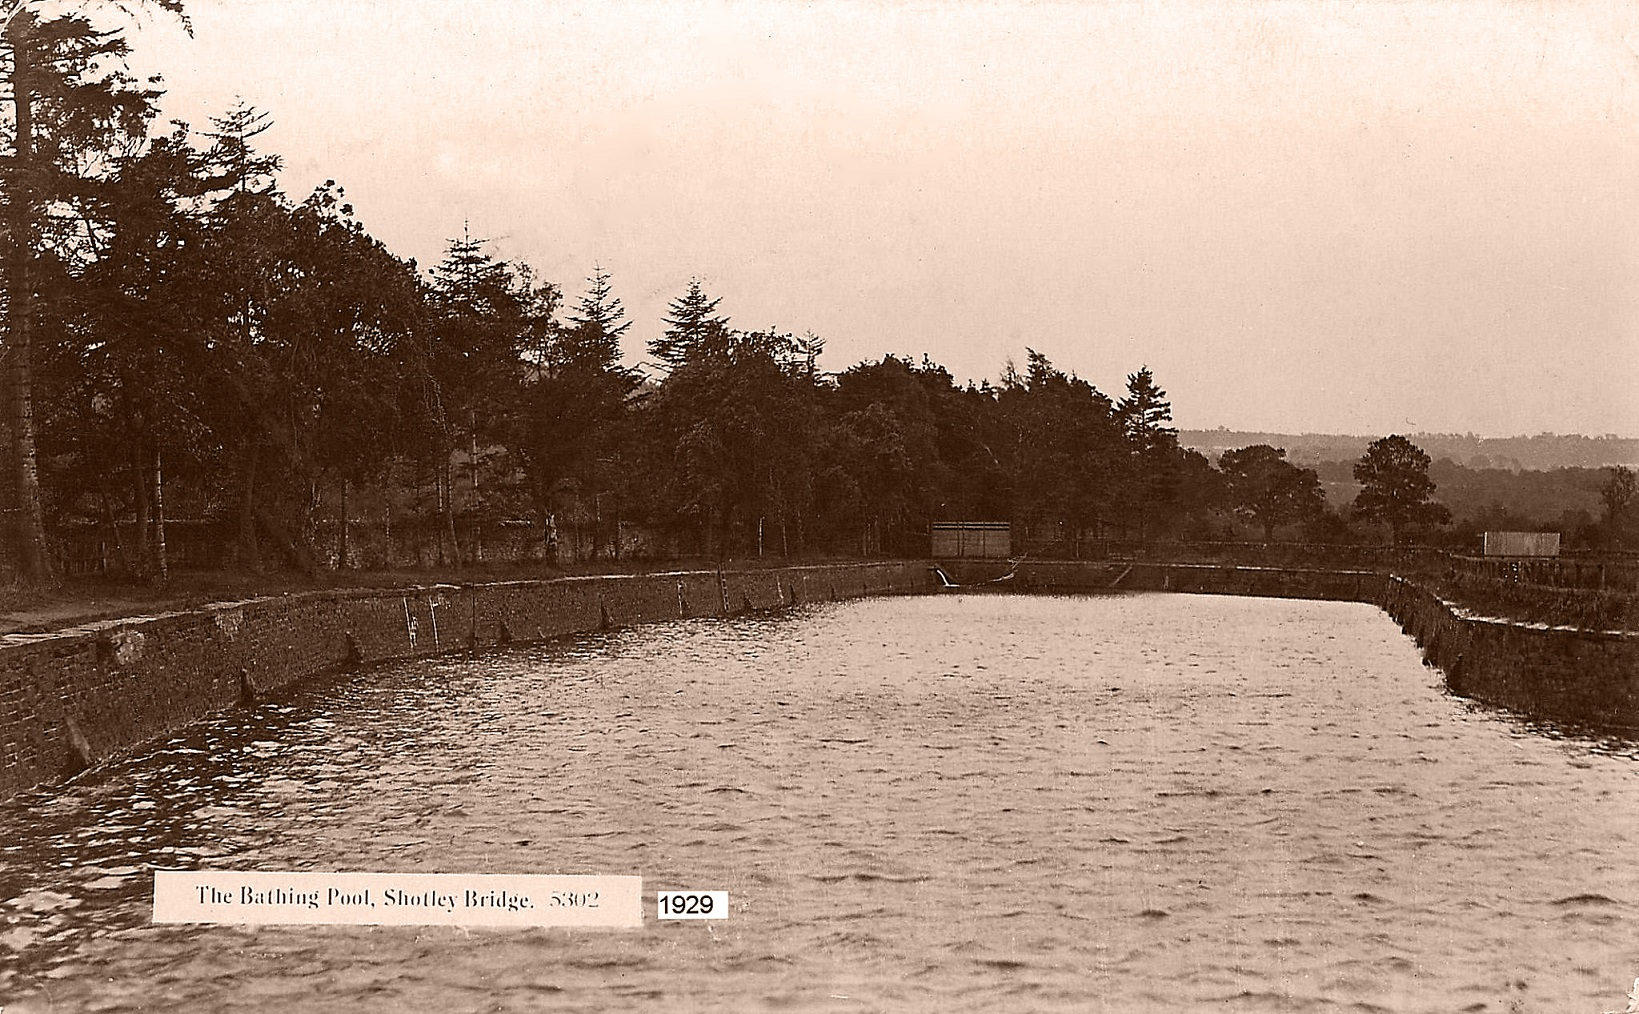 Rivers and Pools - Bathing Pool Shotley Bridge 1929-2